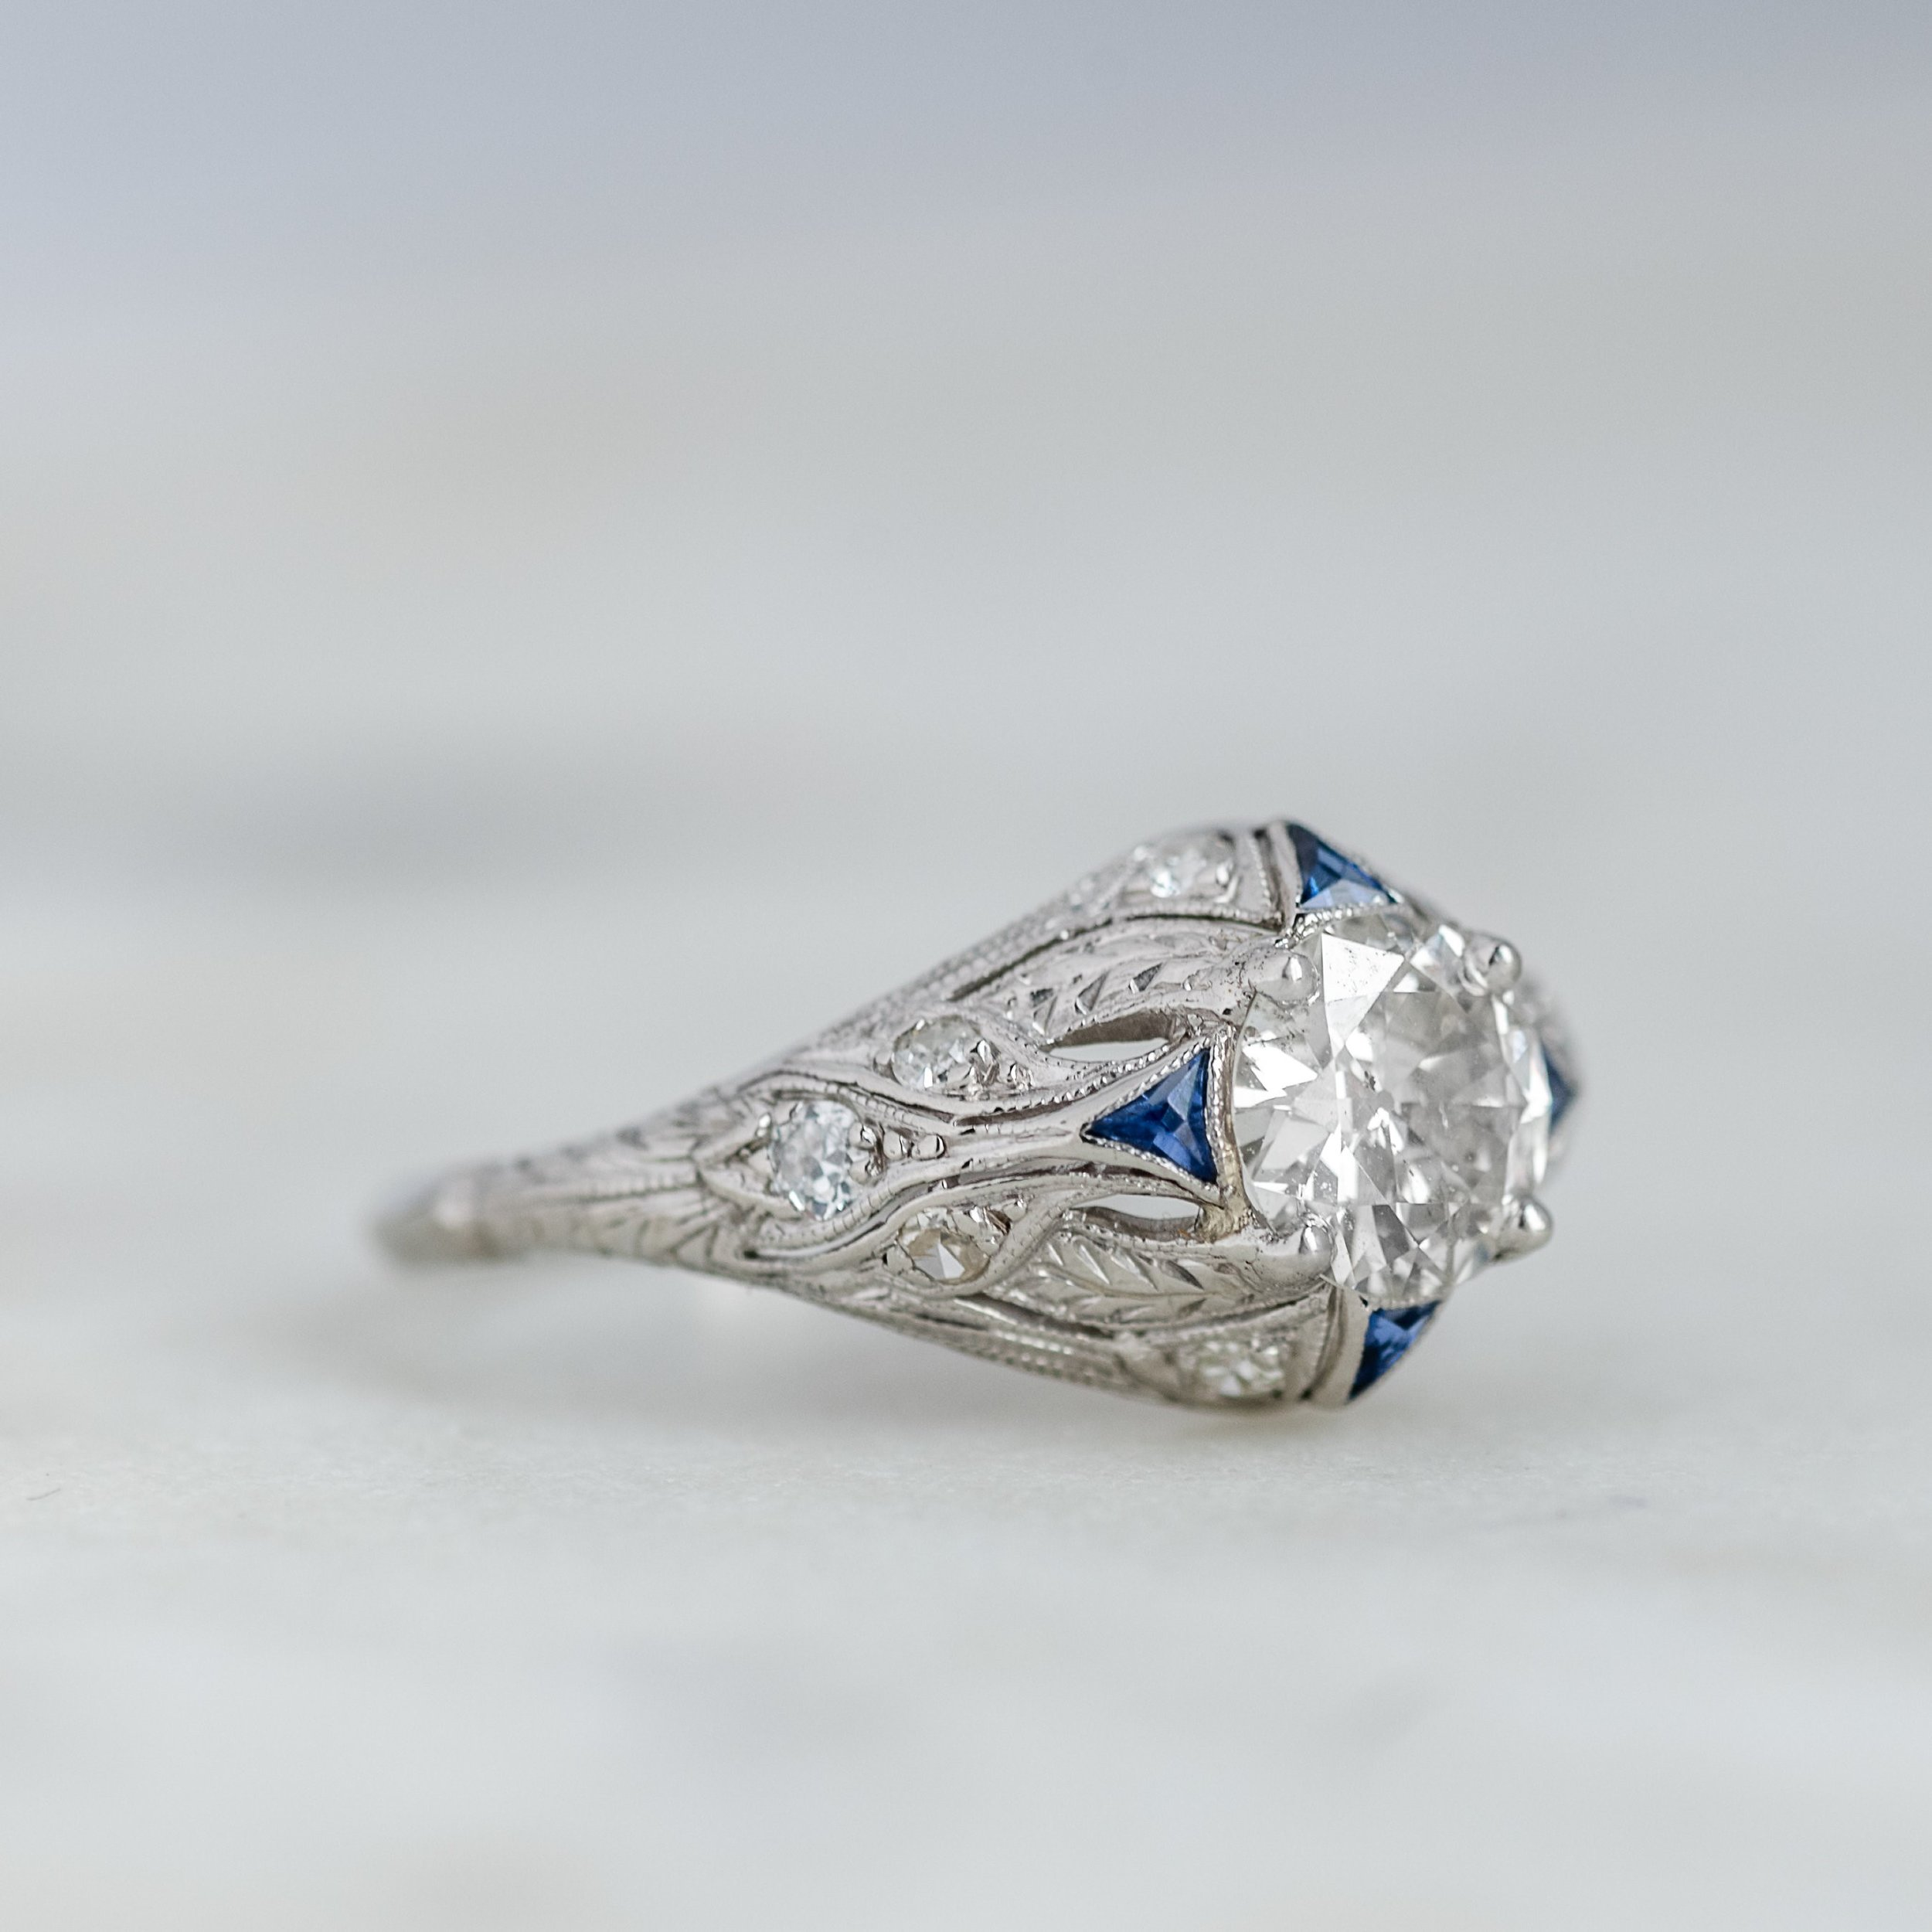 Jaw dropping Art Deco diamond ring featuring a center 1.10 carat Old European cut diamond, beautifully accented by blue sapphires. Shop this beauty  HERE .